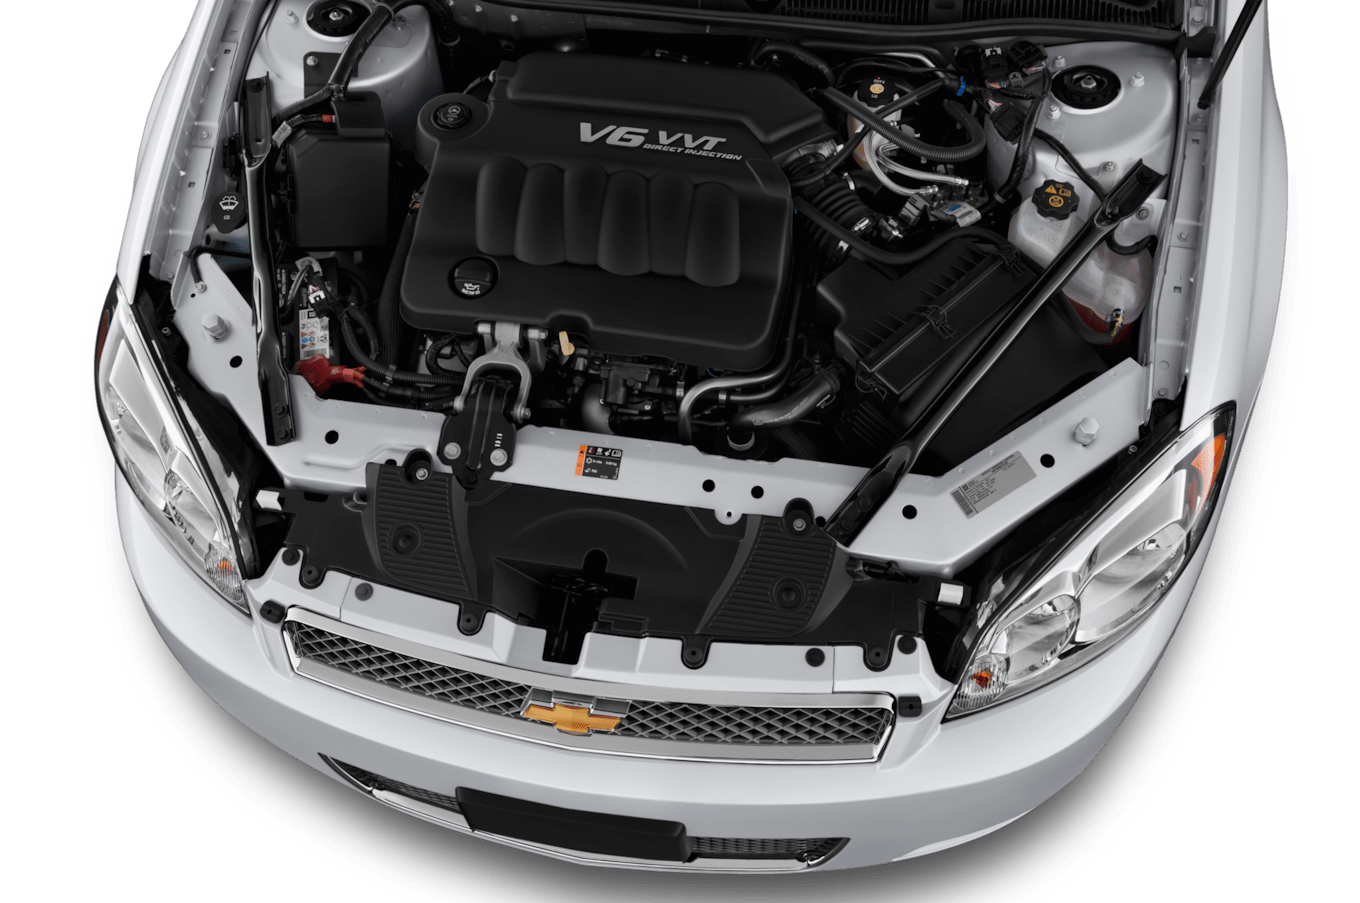 2013 chevrolet impala ls sedan engine chevy 3500 v6 engine diagram